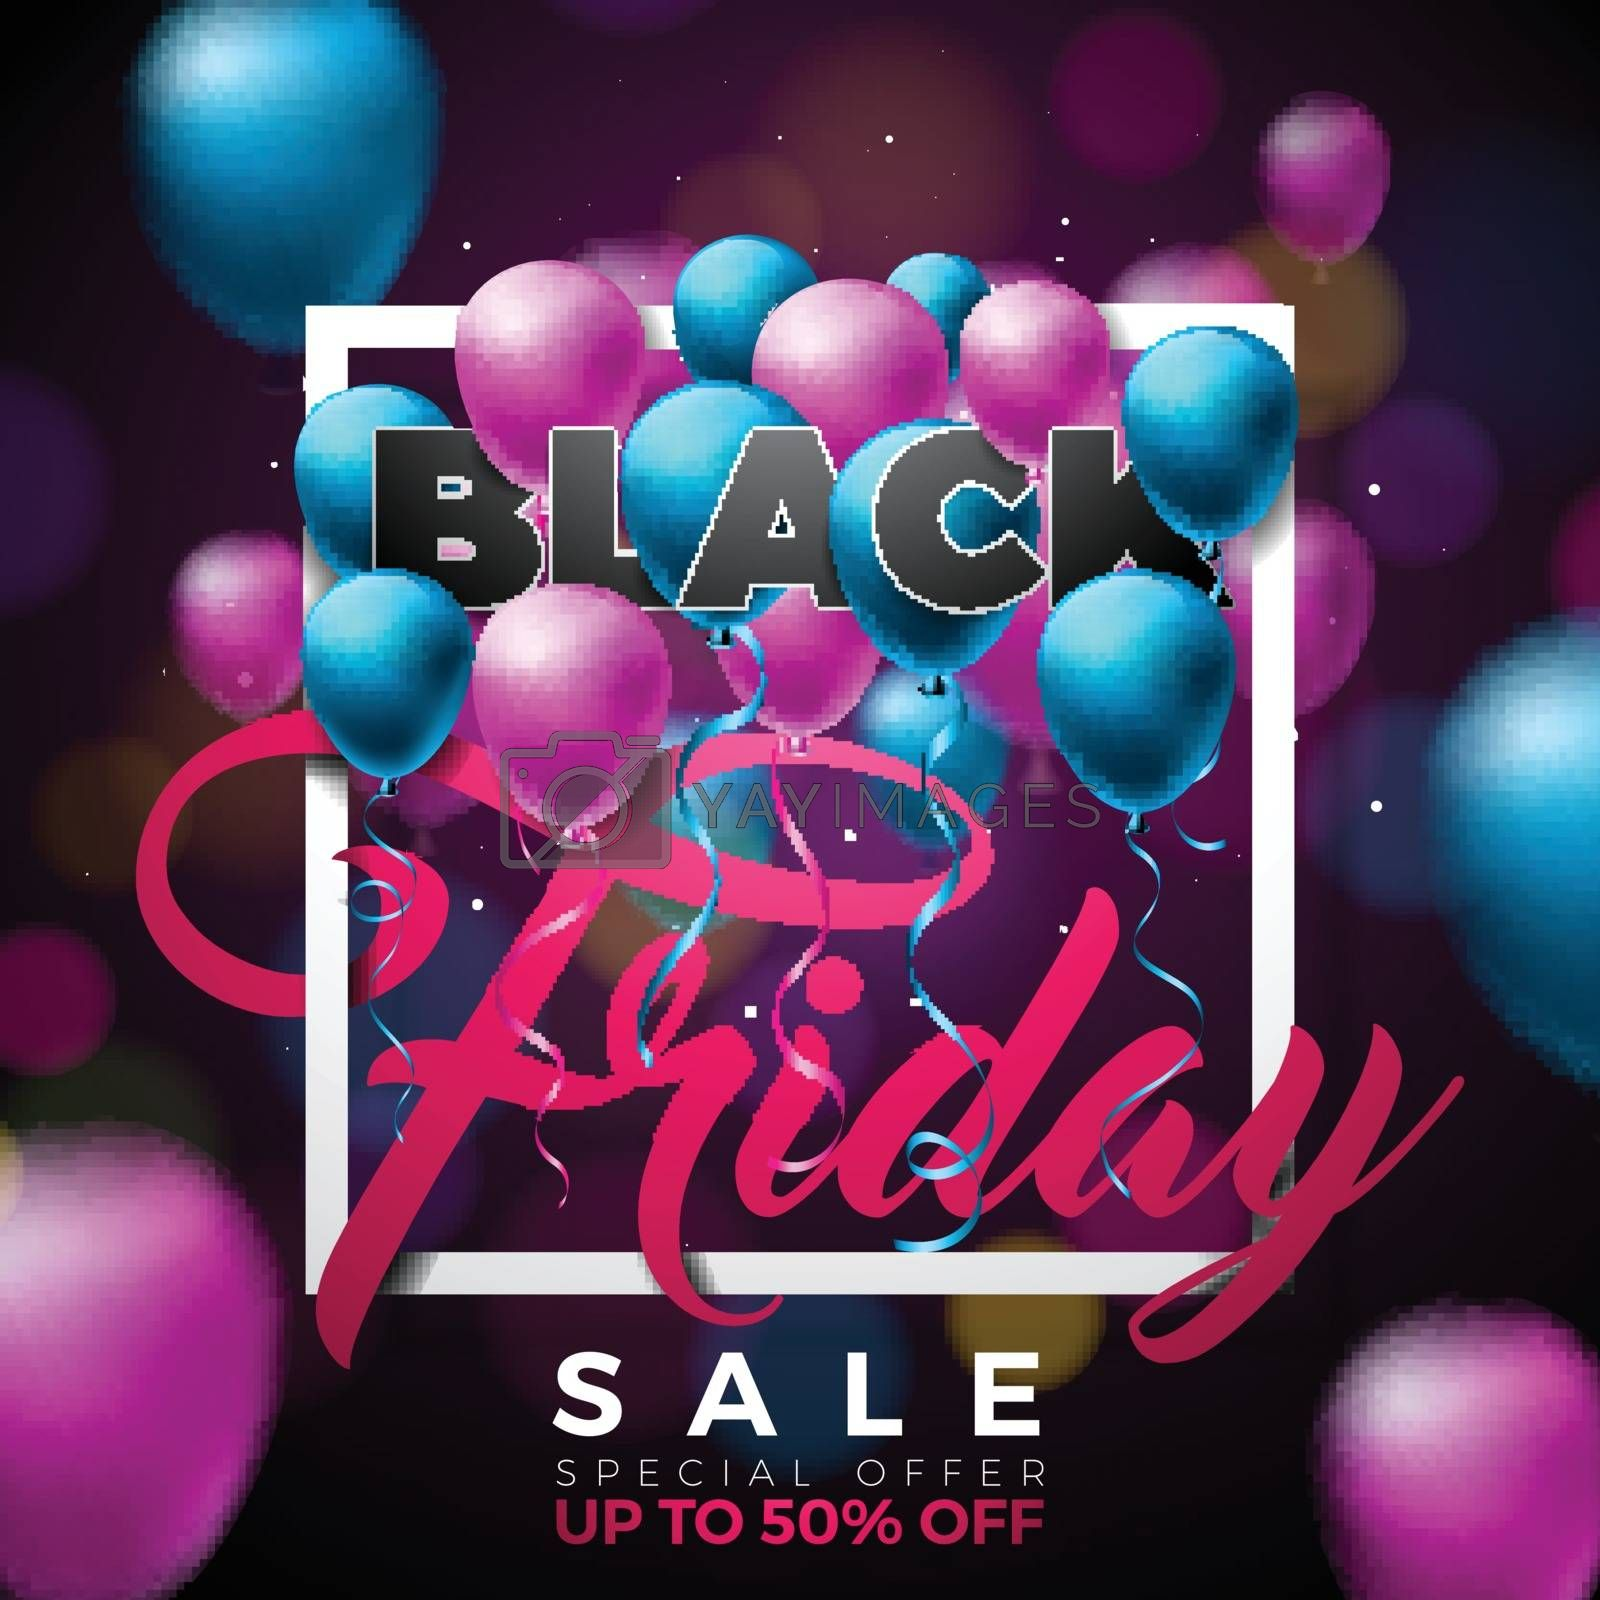 Black Friday Sale Vector Illustration with Lighting Garland on Shiny Background. Promotion Design Template for Banner or Poster